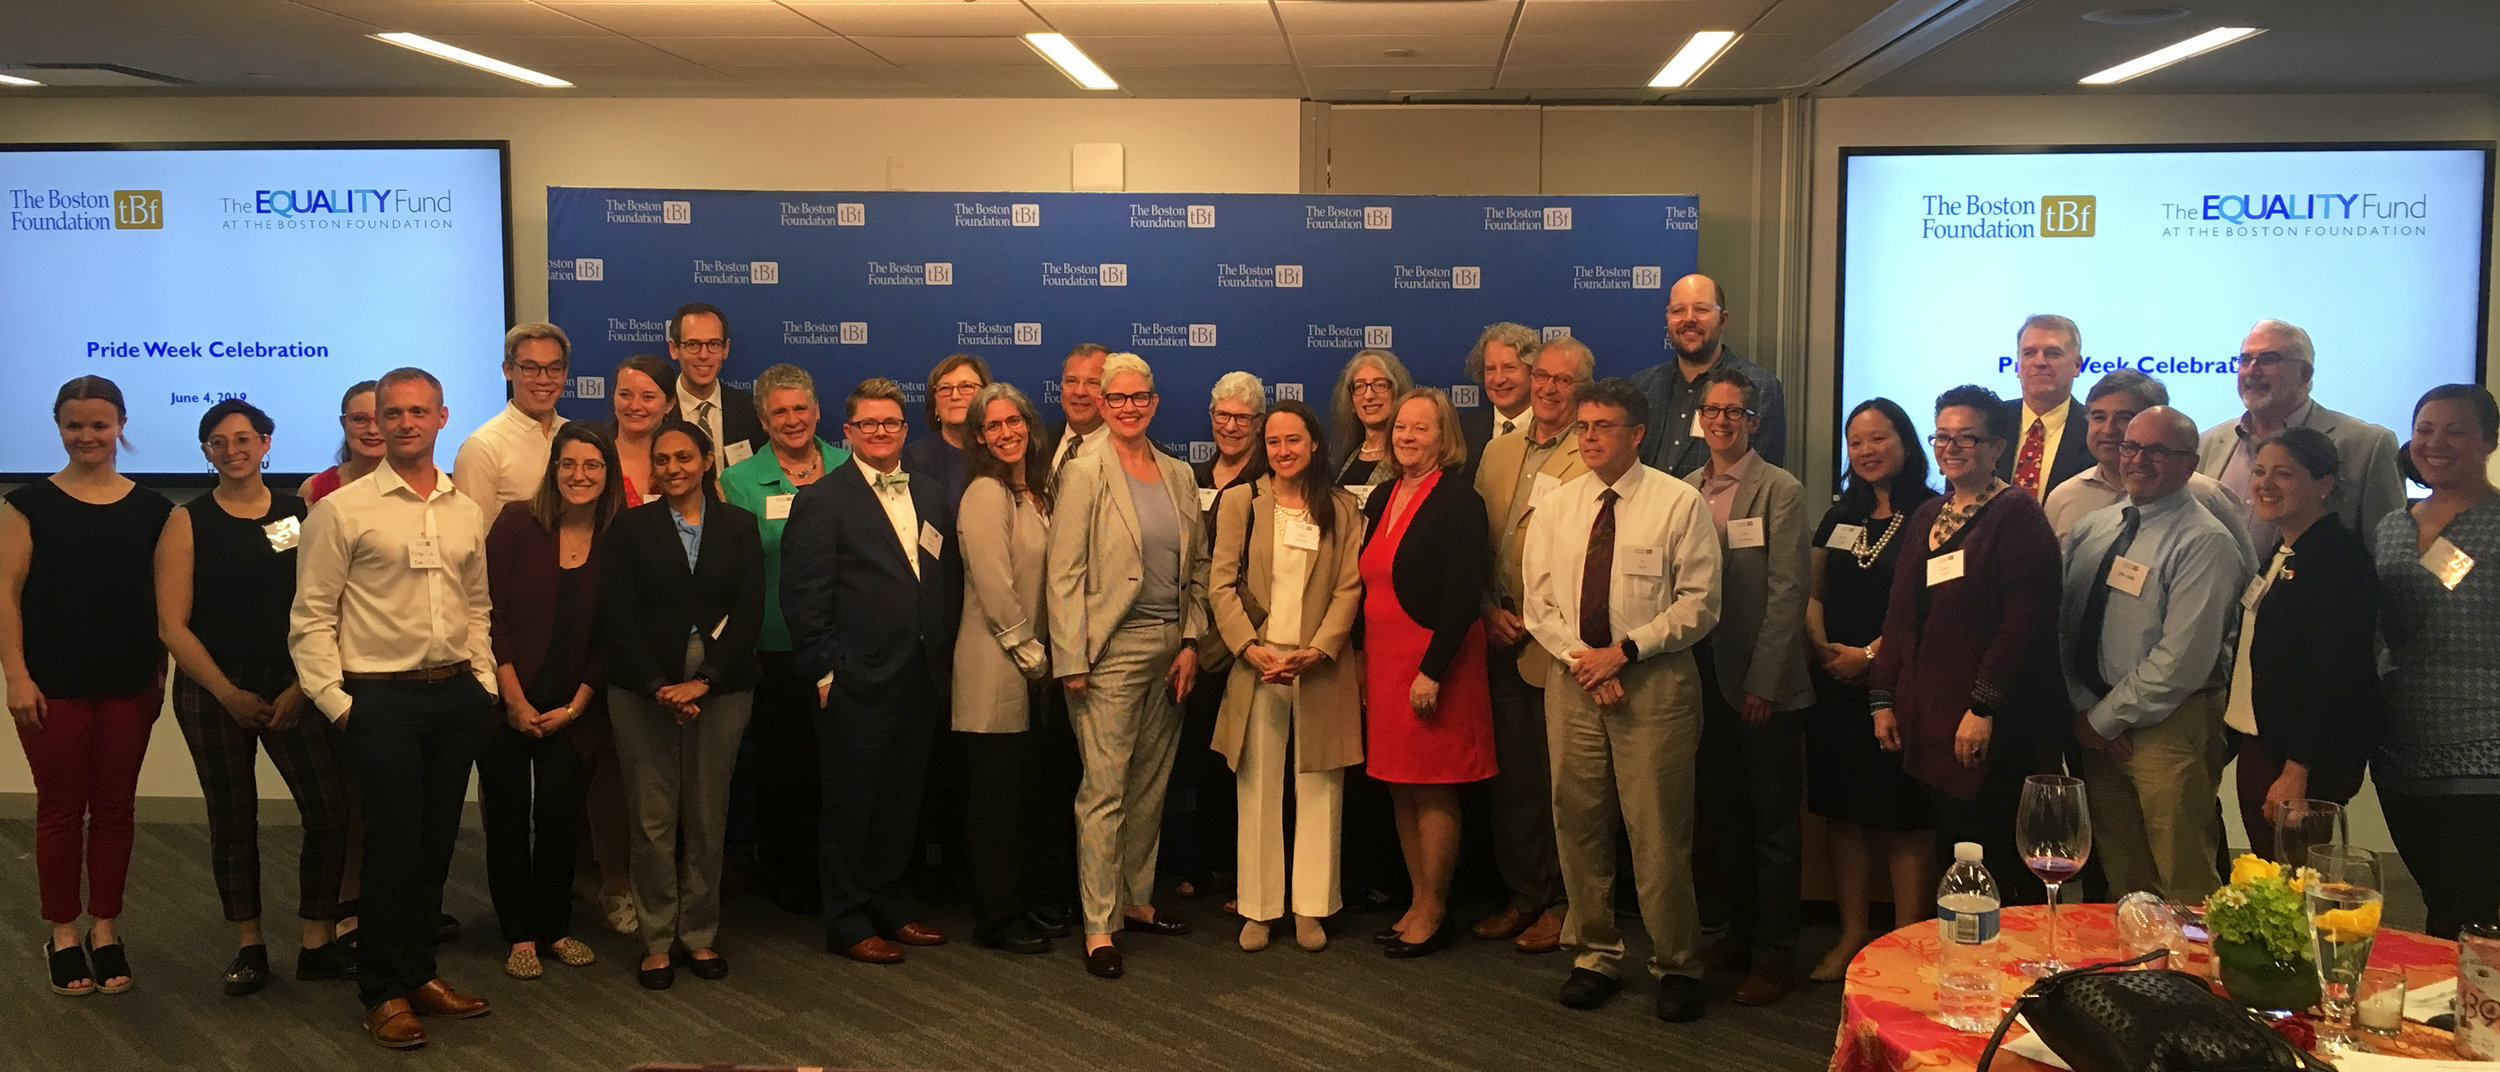 Bridge staff attended the 2019 Equality Fund Reception at The Boston Foundation with fellow grantees to kick off Pride Week 2019.